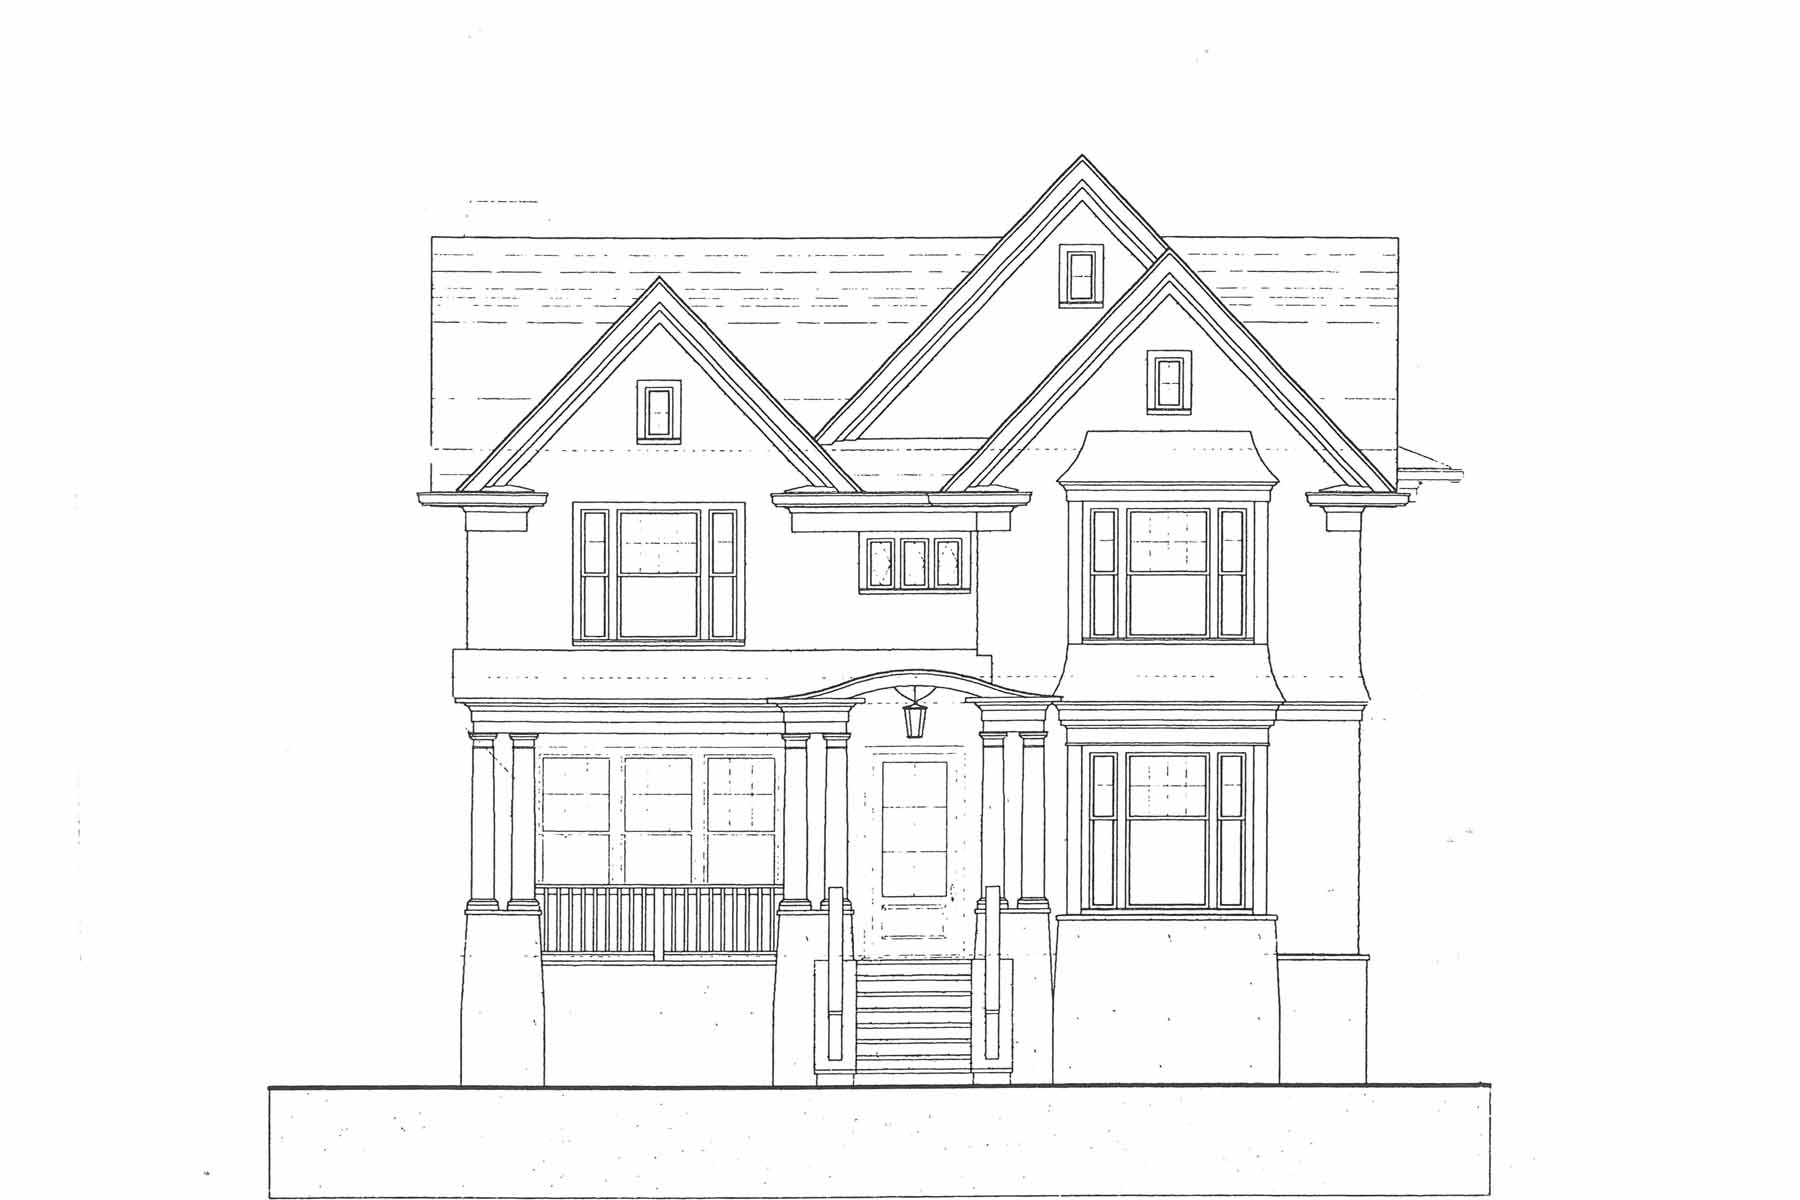 Maison unifamiliale pour l Vente à New construction by JackBilt Homes in the Garden Hills area of Buckhead! 331 Peachtree Avenue NE Atlanta, Georgia 30305 États-Unis